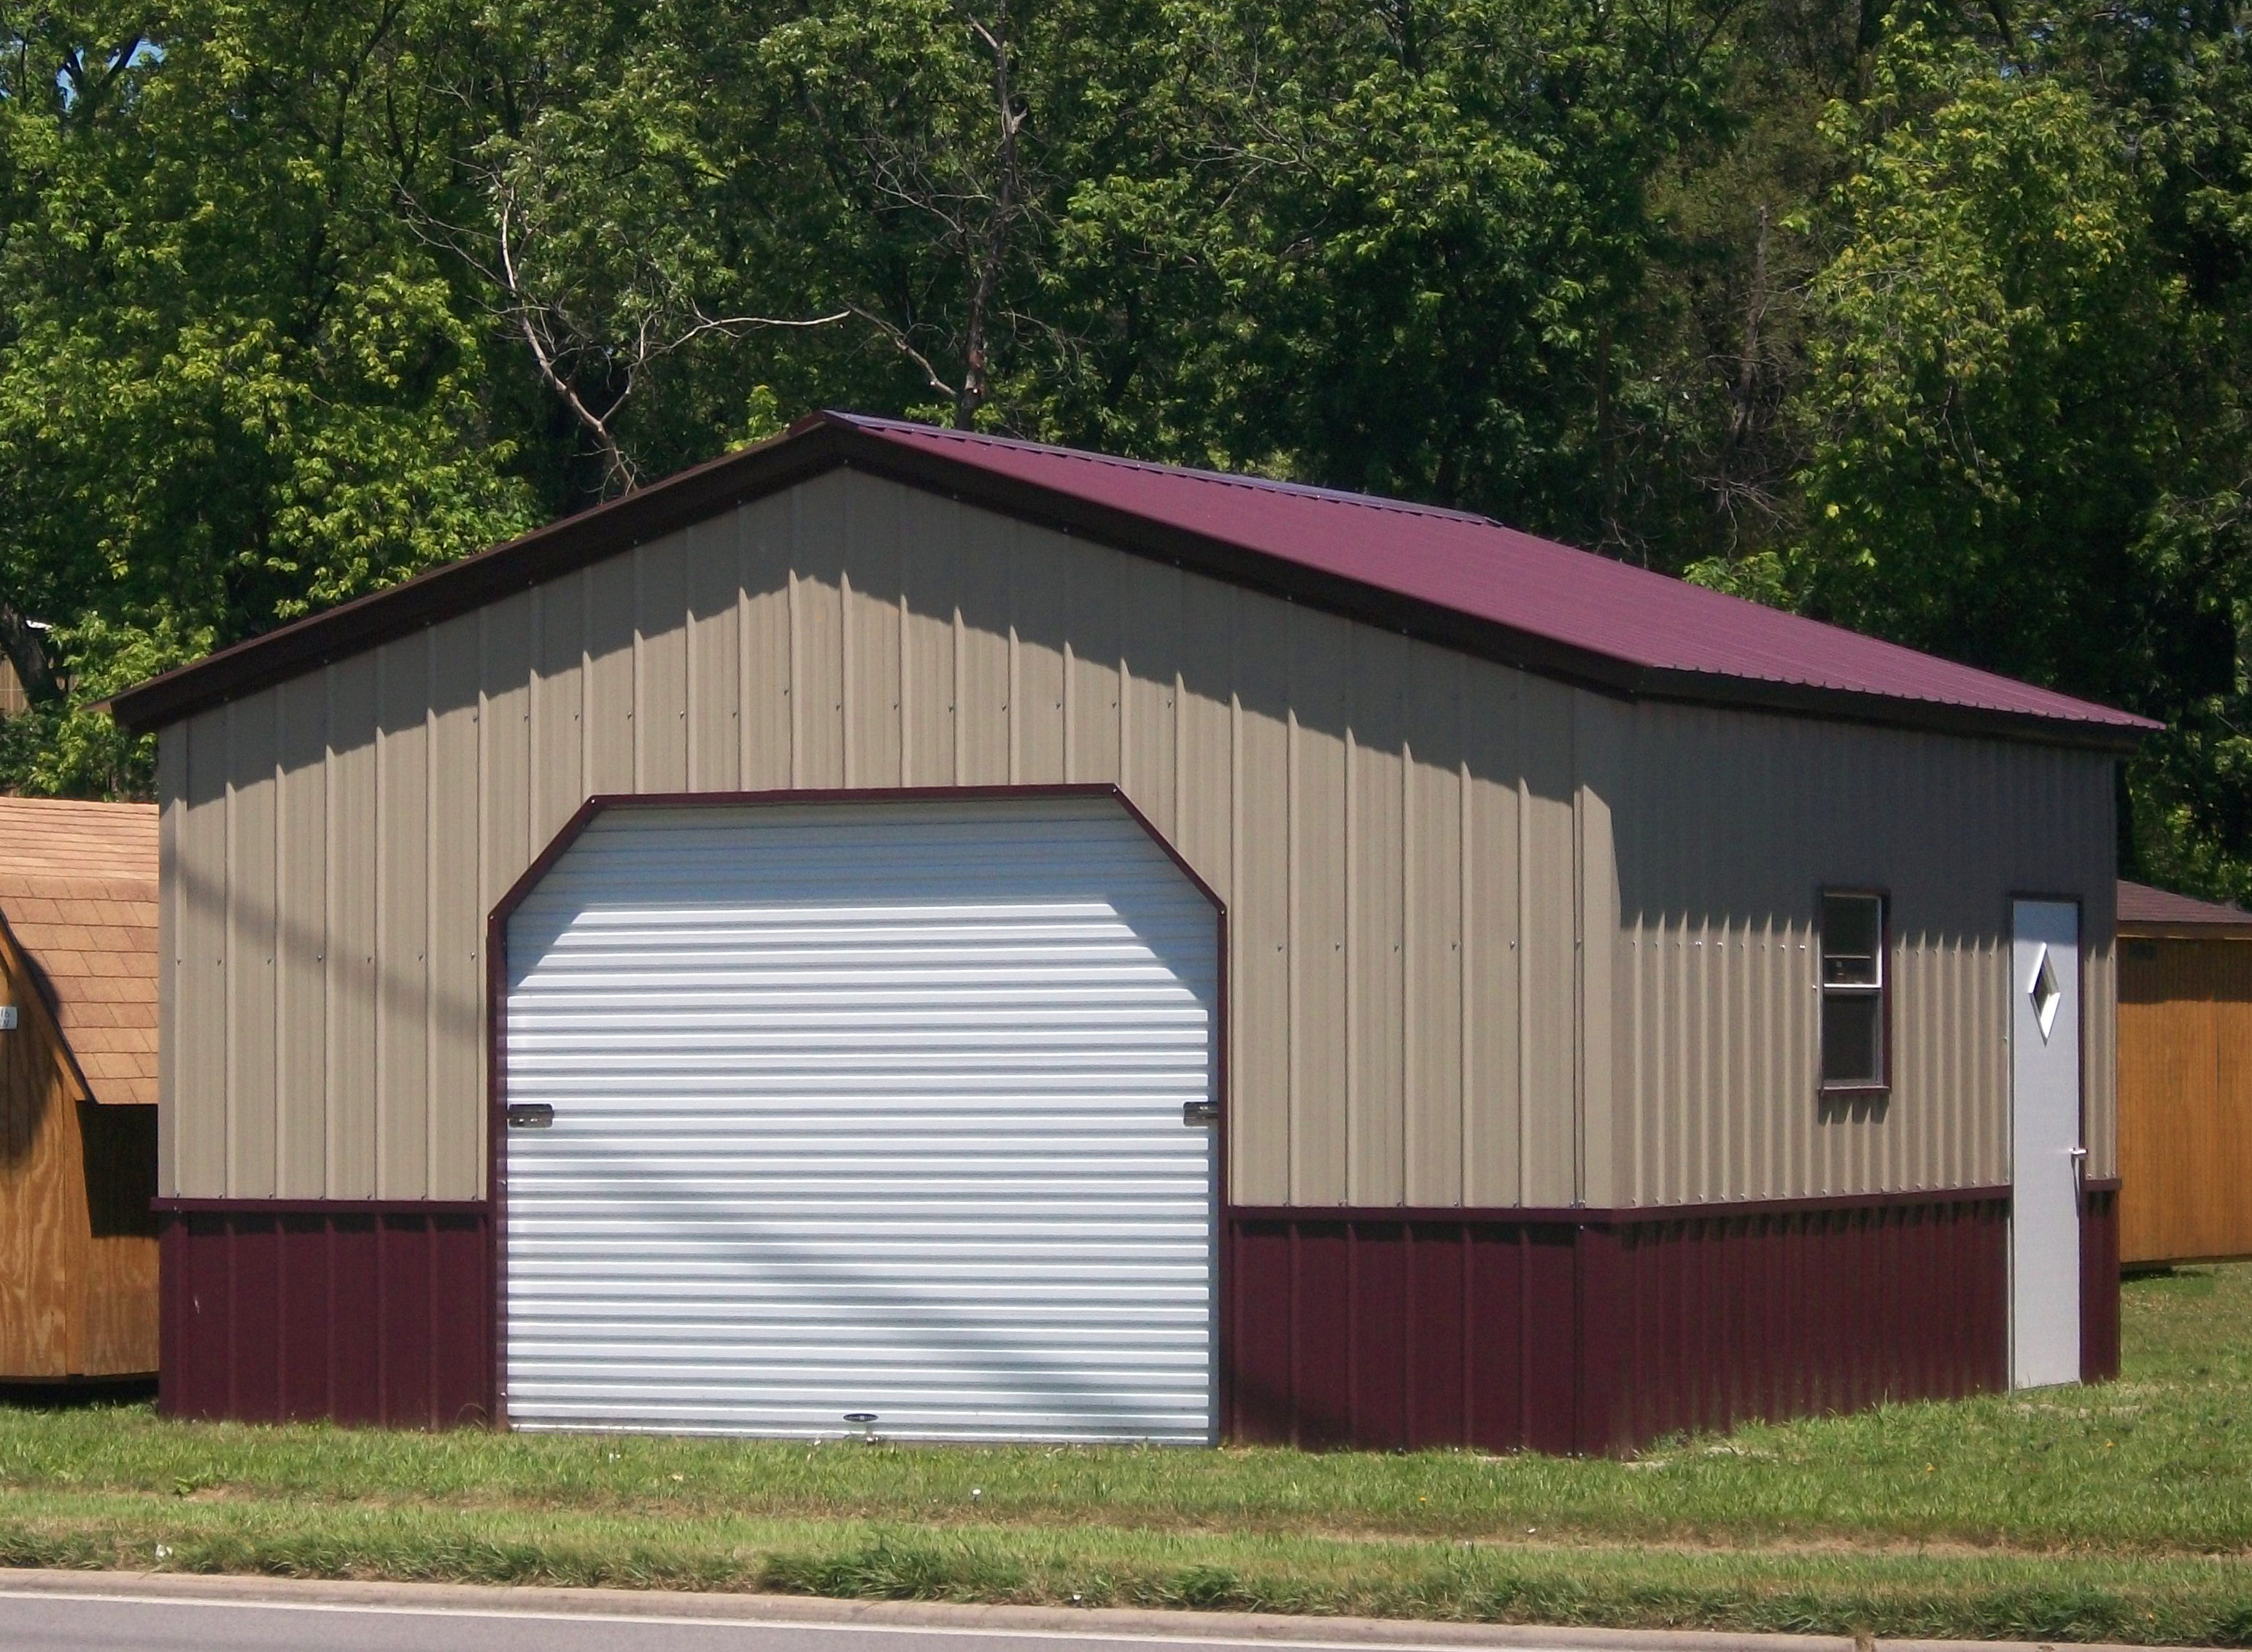 Wilson nc insulated garage door cost - Add A Title